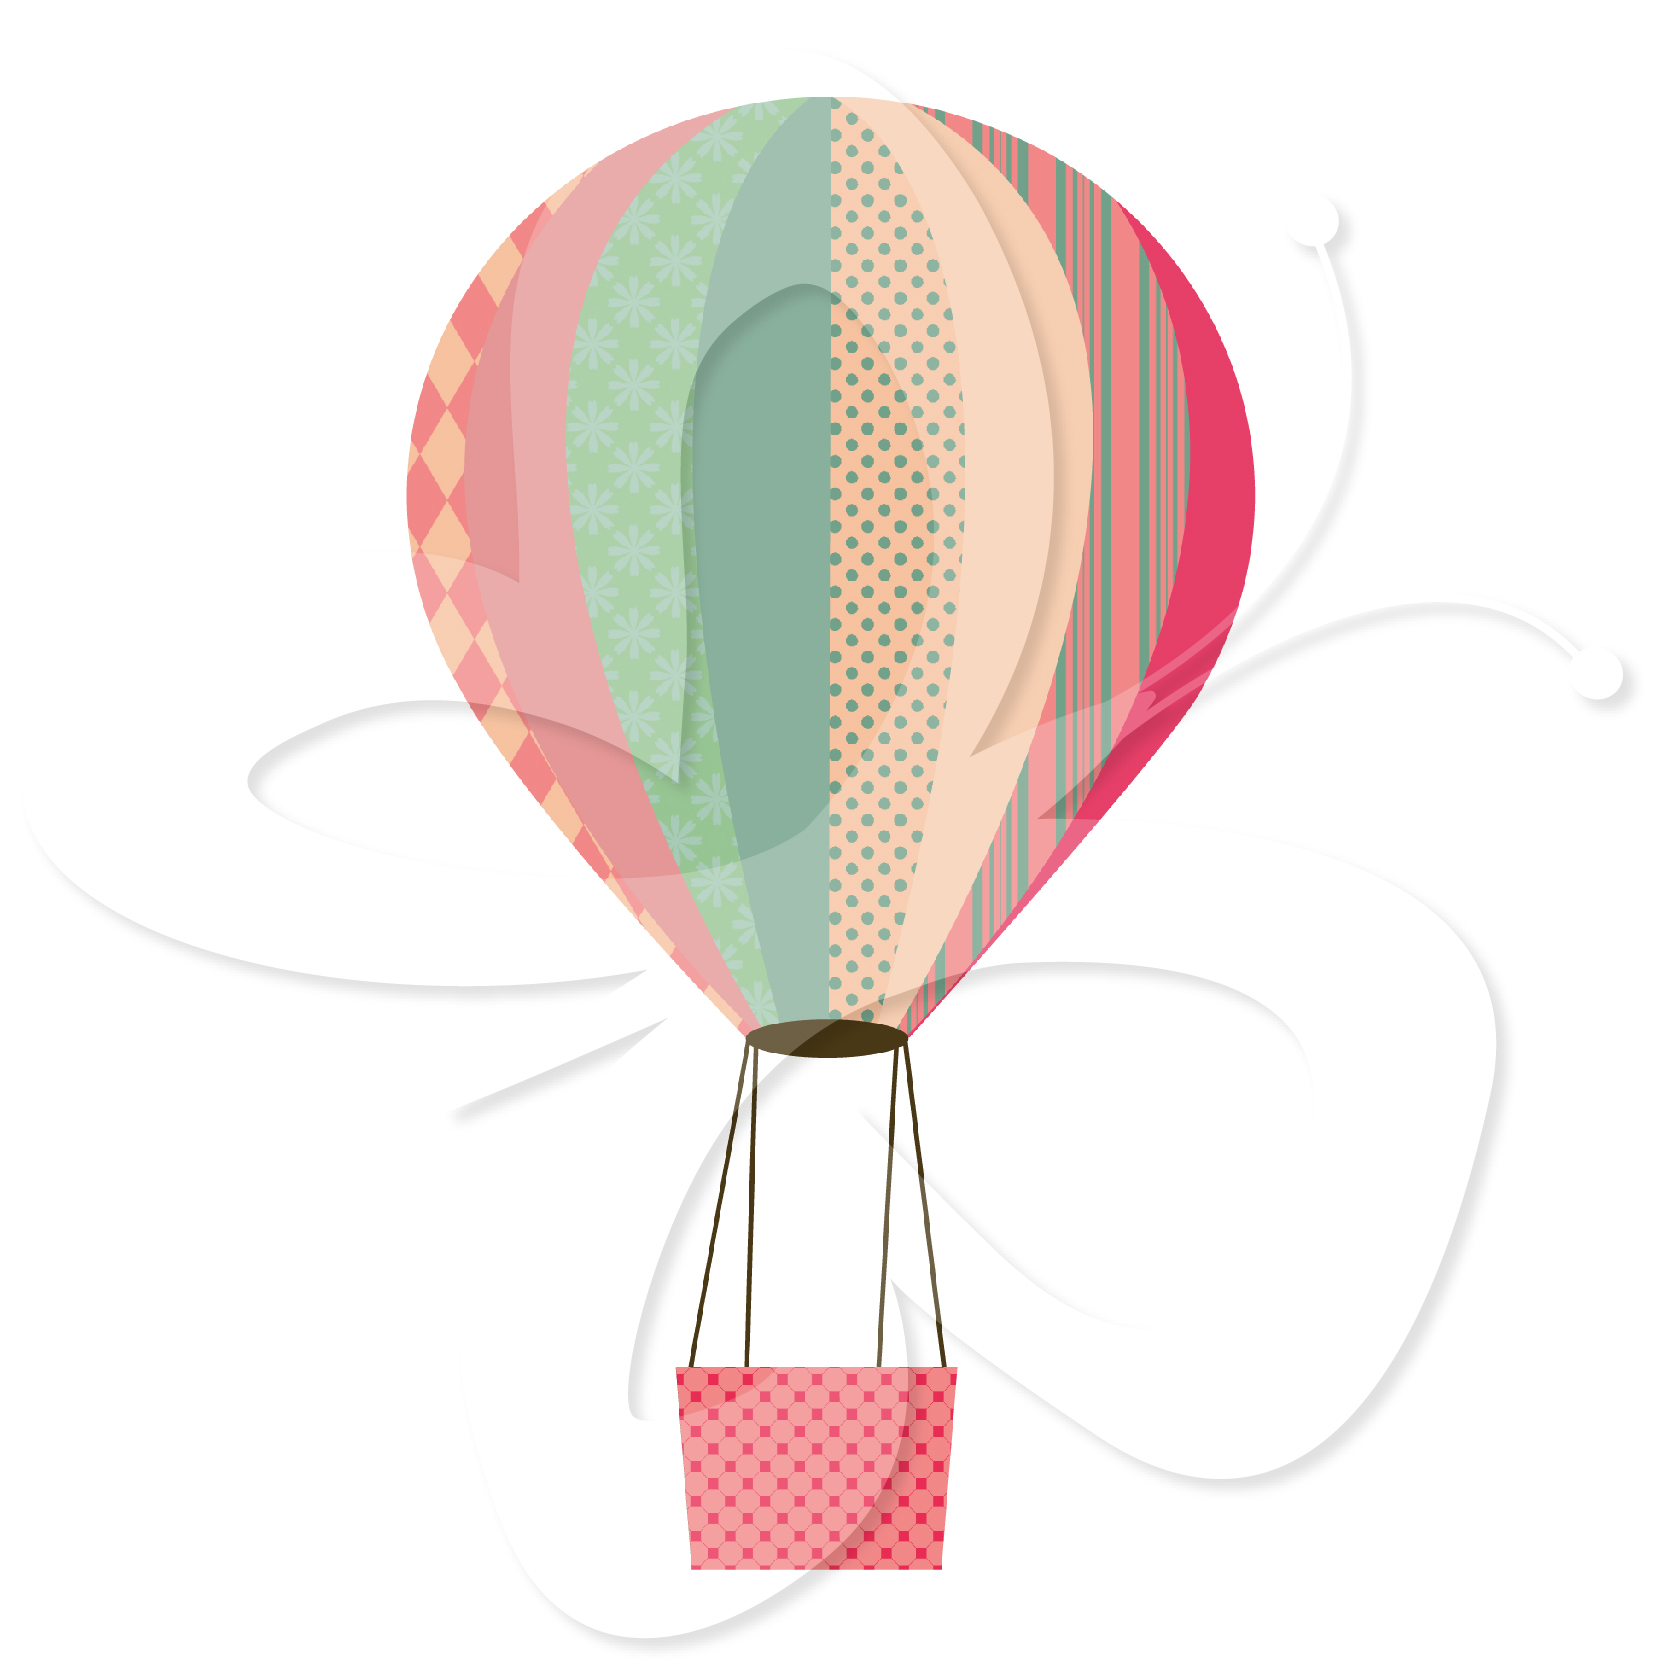 Panda free images hotairballoonclipartbaby. Baby clipart hot air balloon